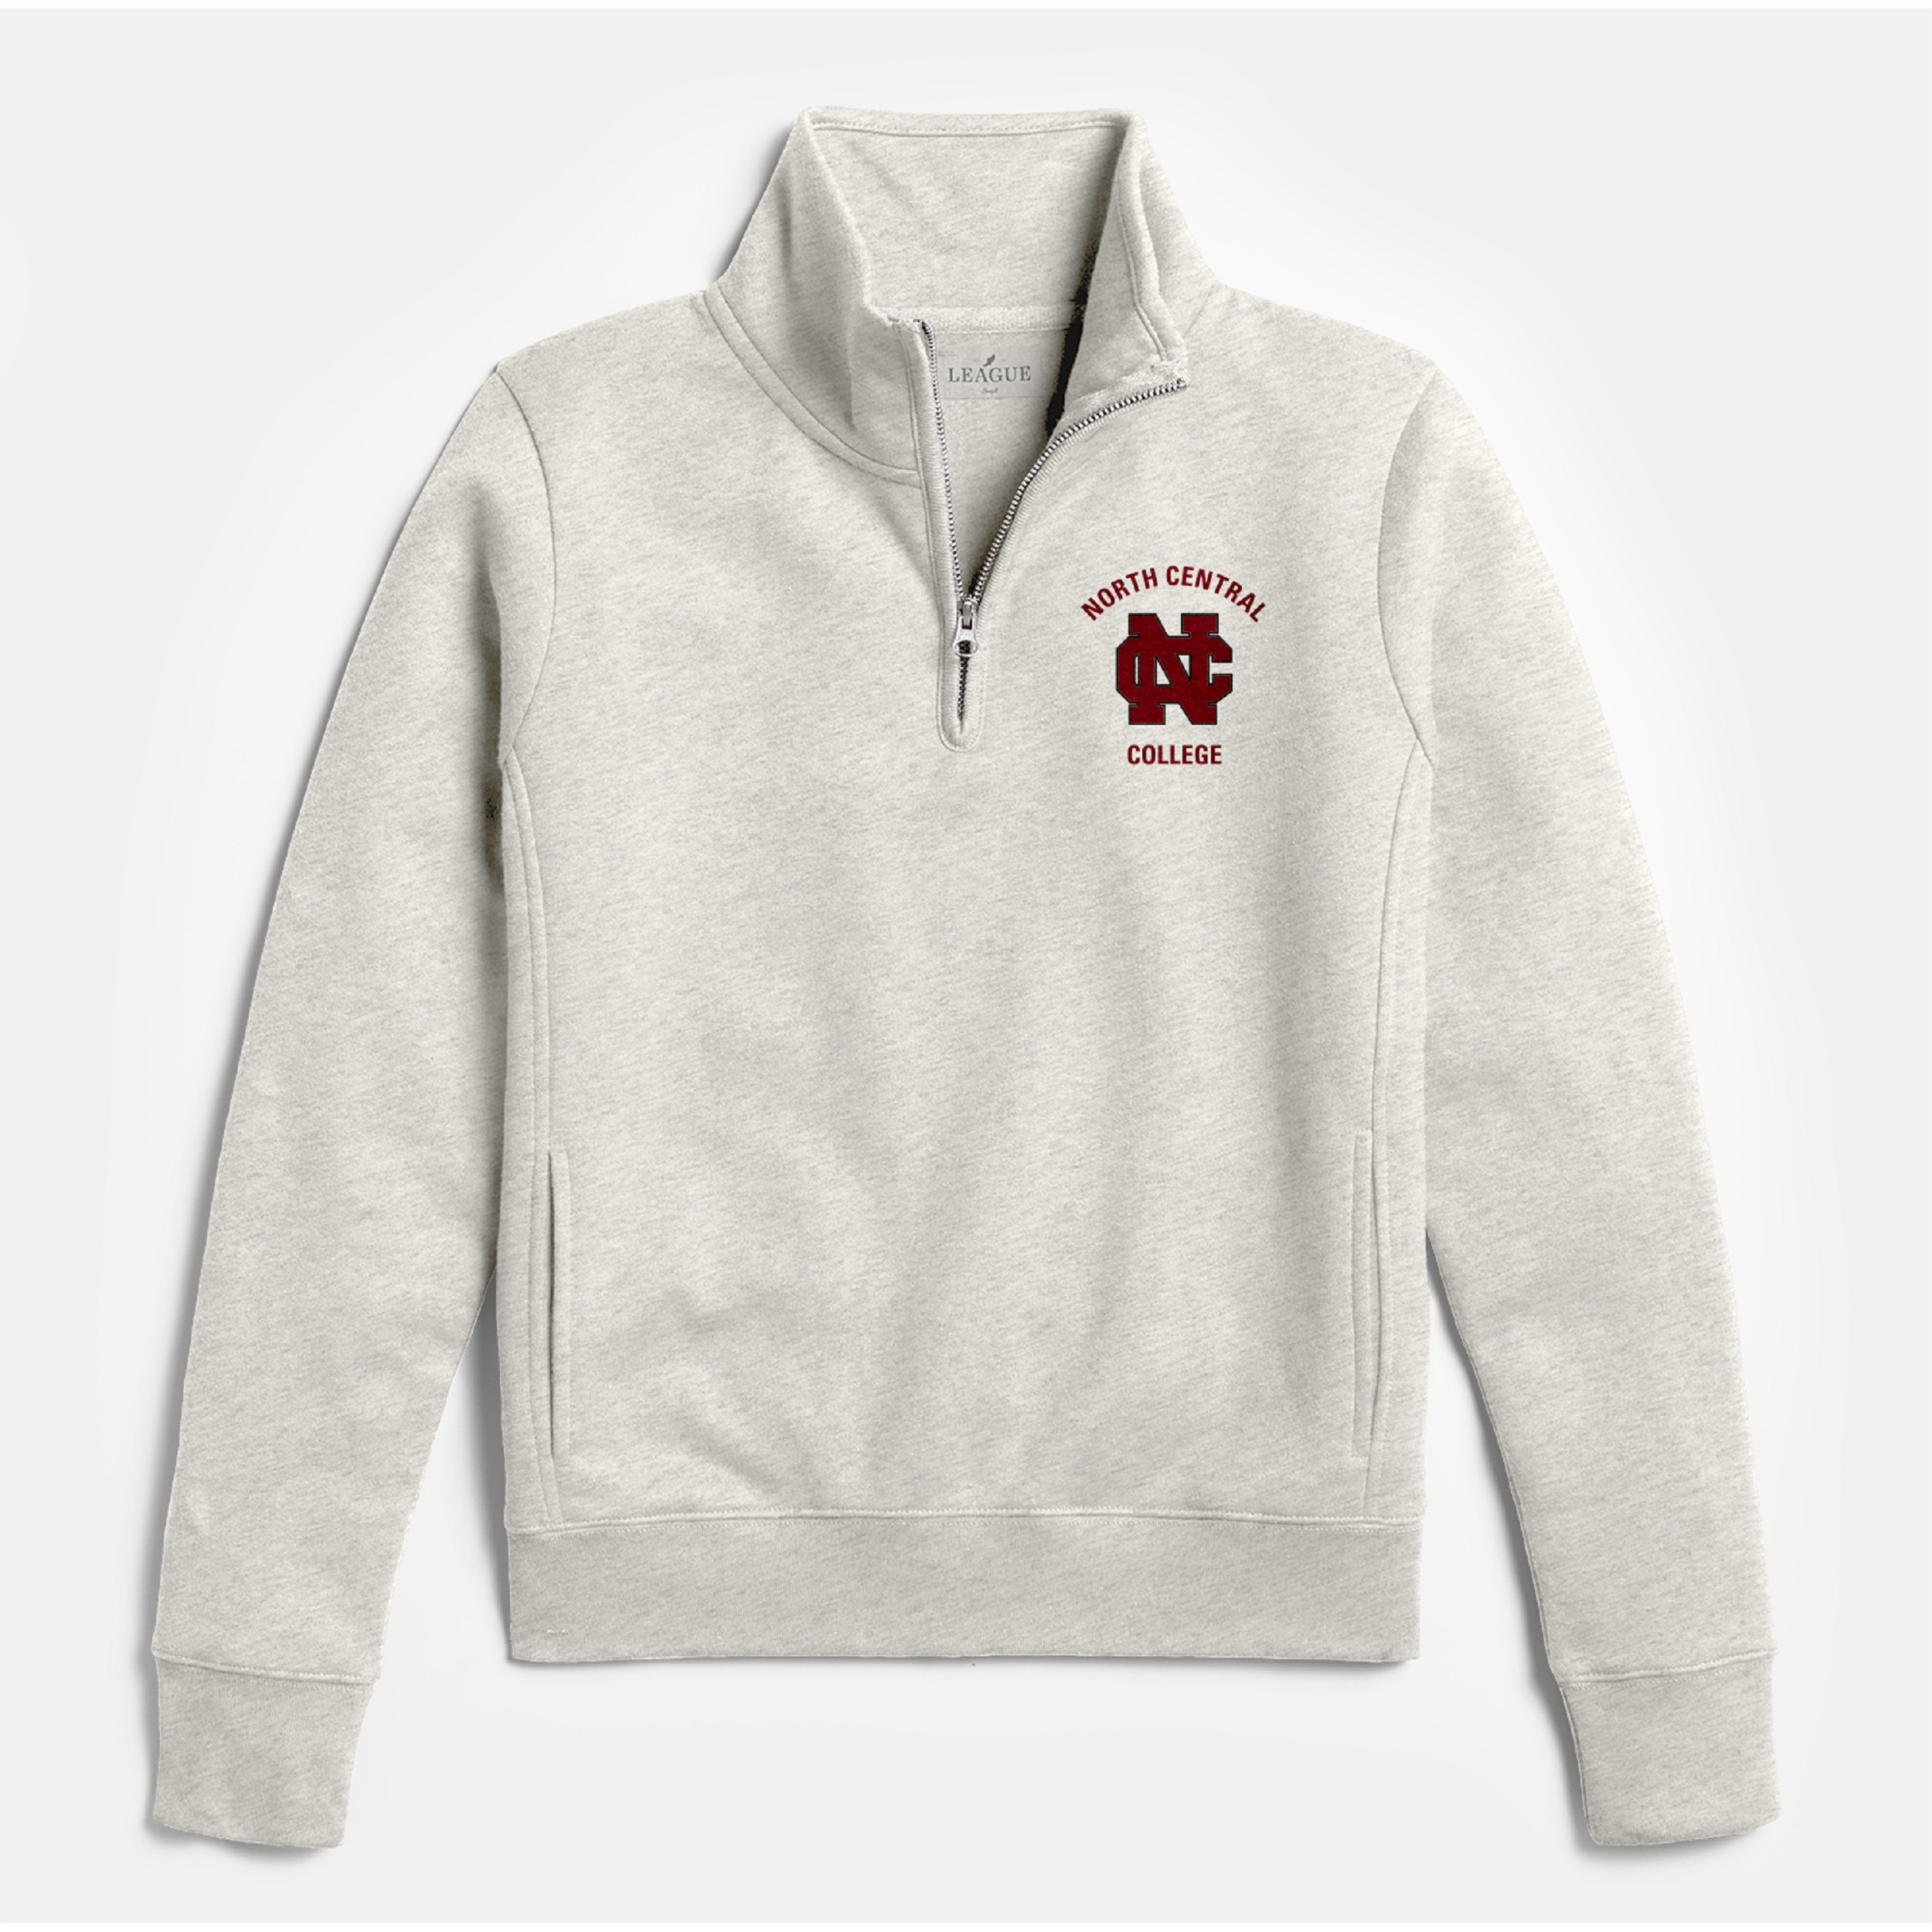 Image for the Academy 1/4 Zip by League product